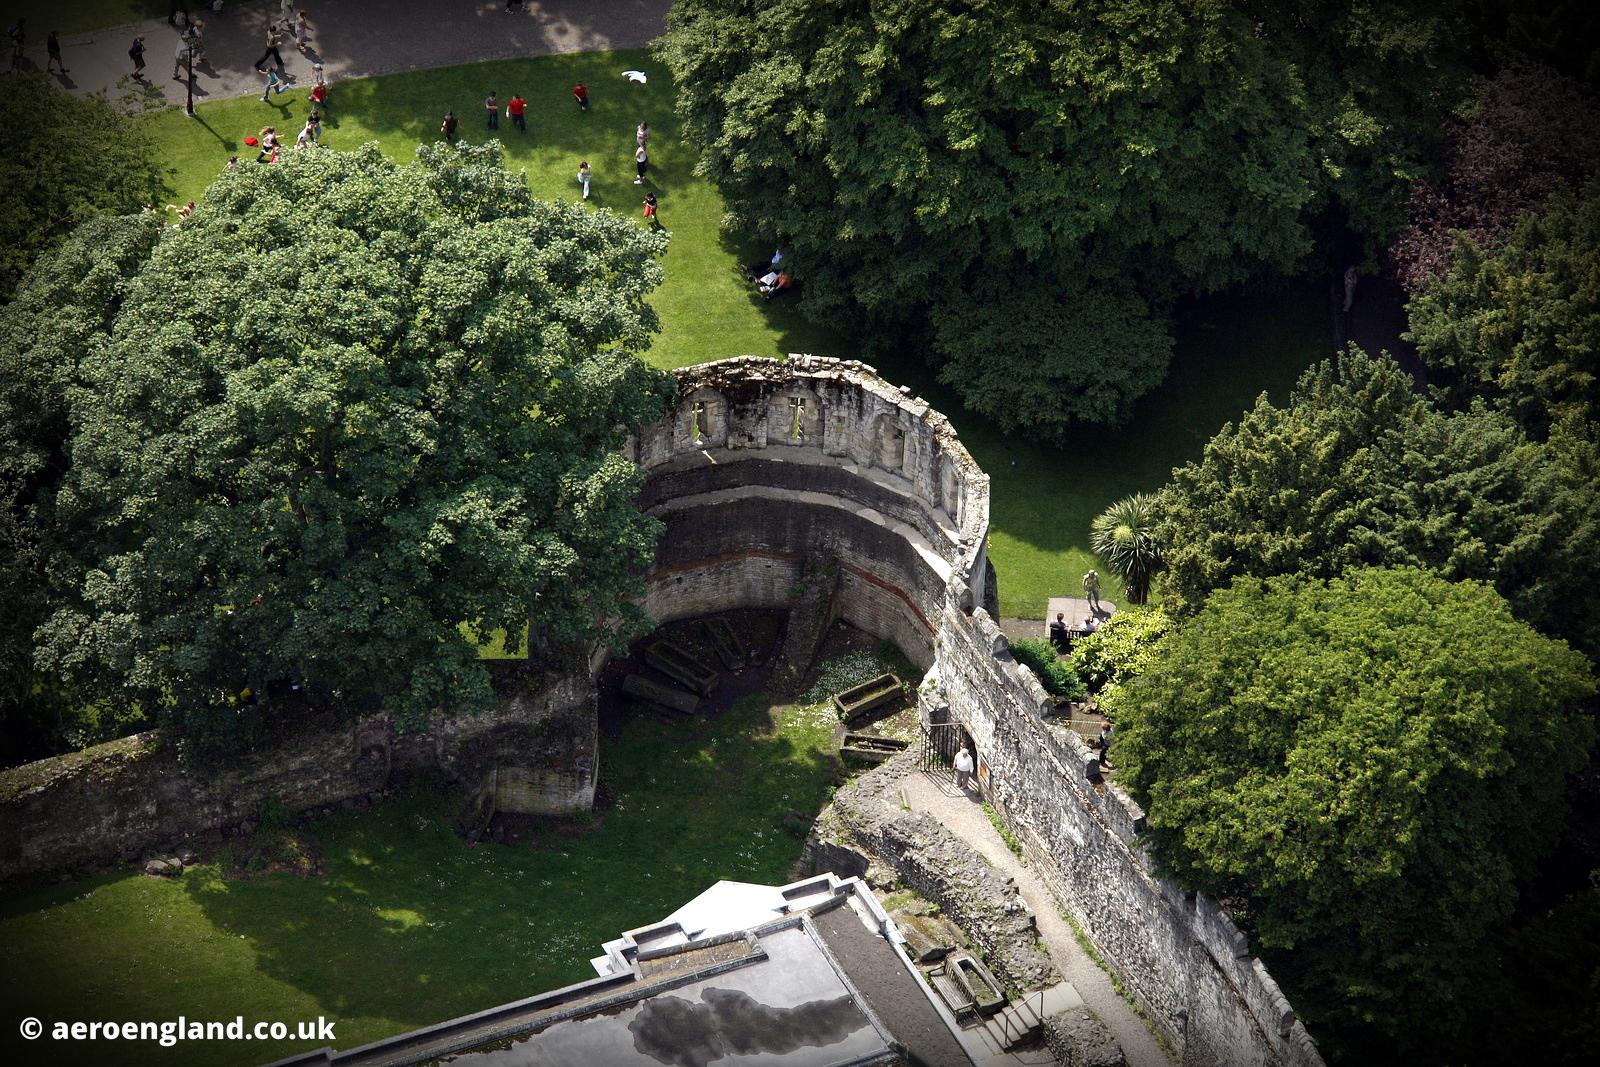 aerial photograph of the Multiangular Tower, York England UK